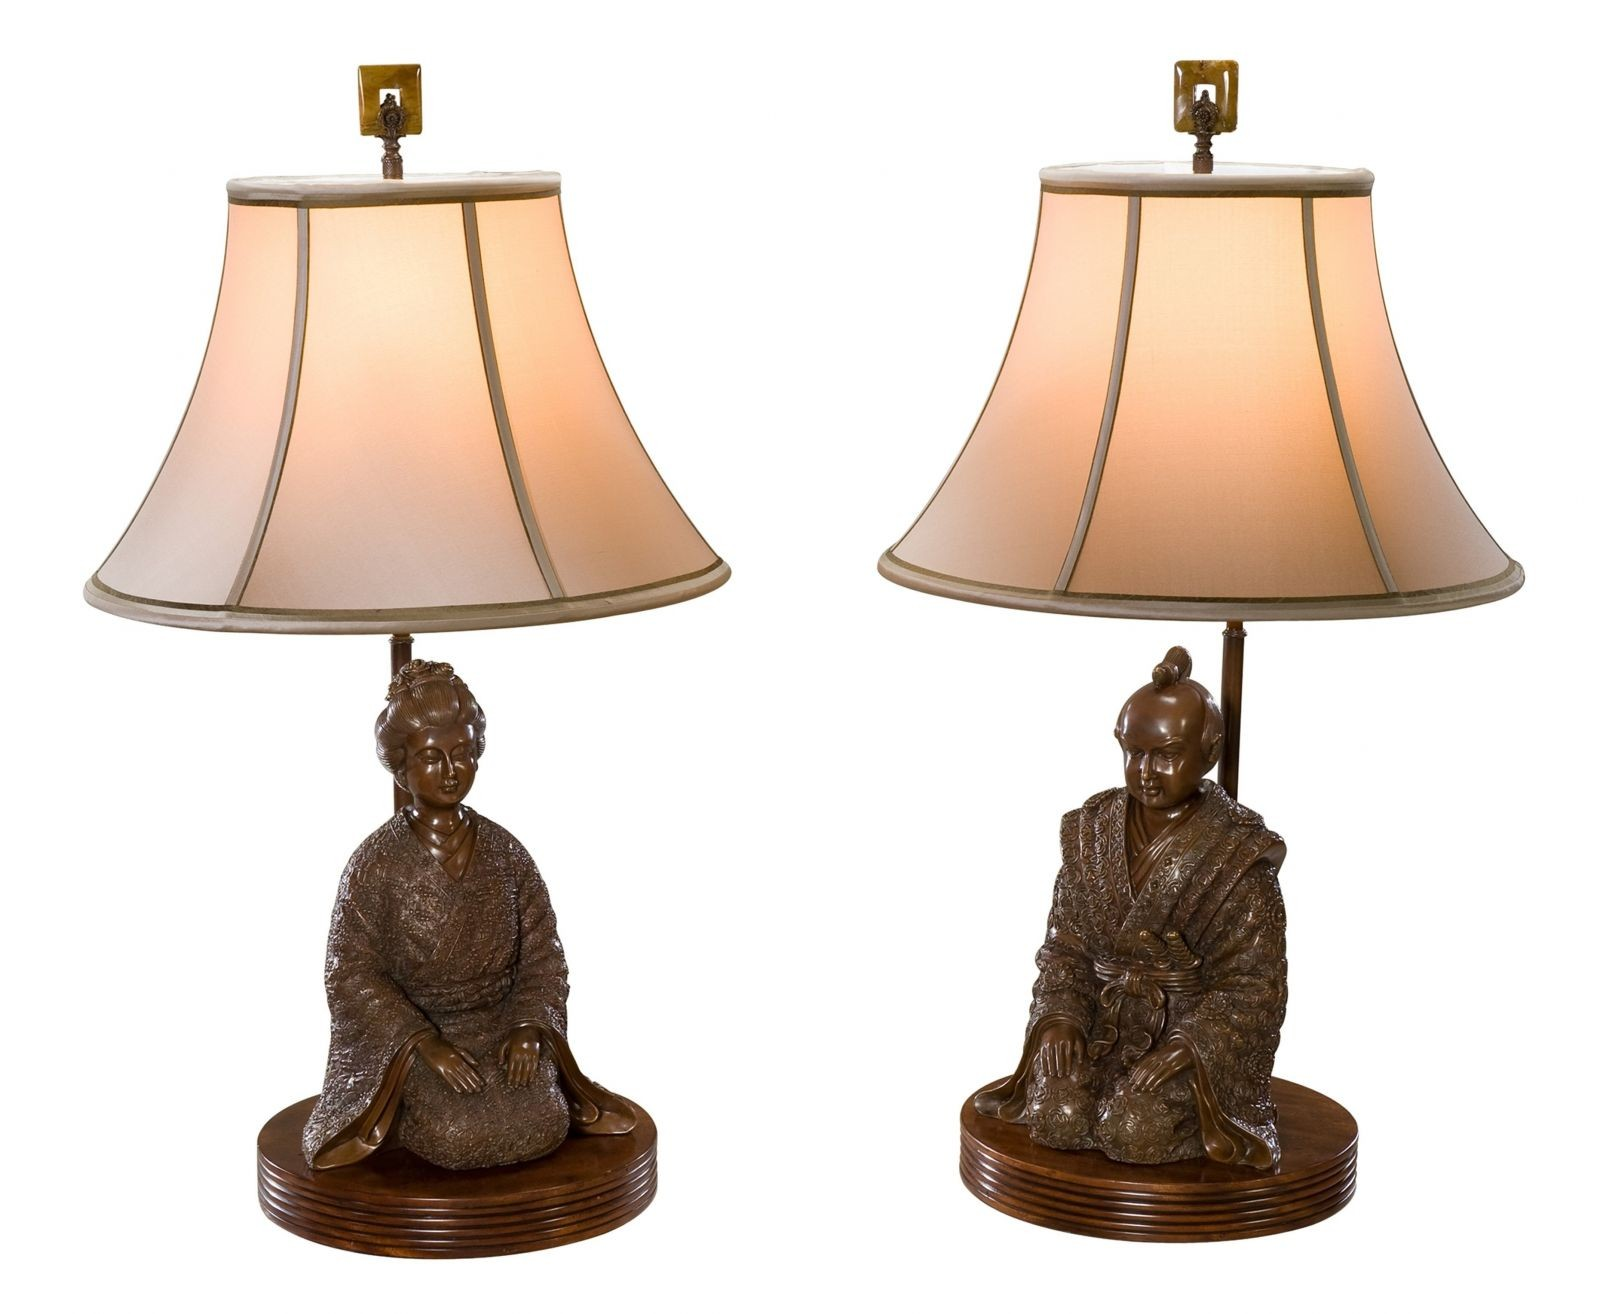 19th Century Japanese Style Table Lamps